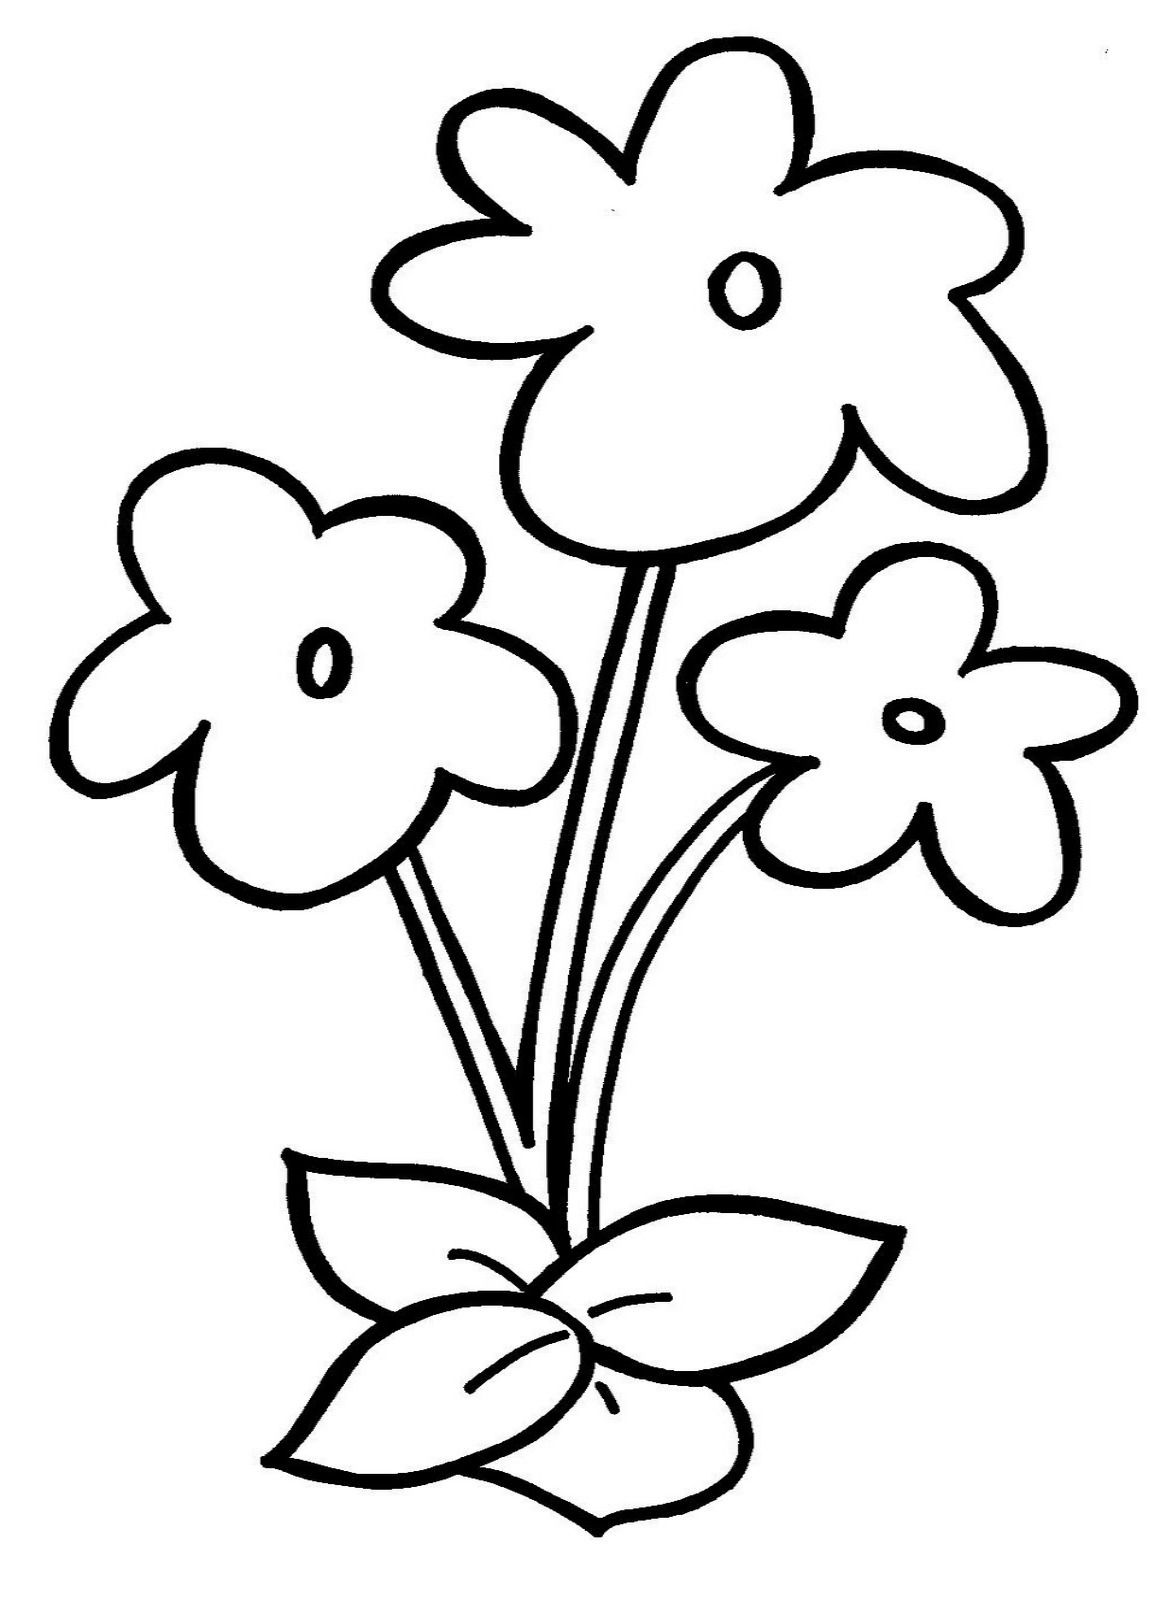 coloring image of a flower free printable flower coloring pages for kids best flower a coloring image of